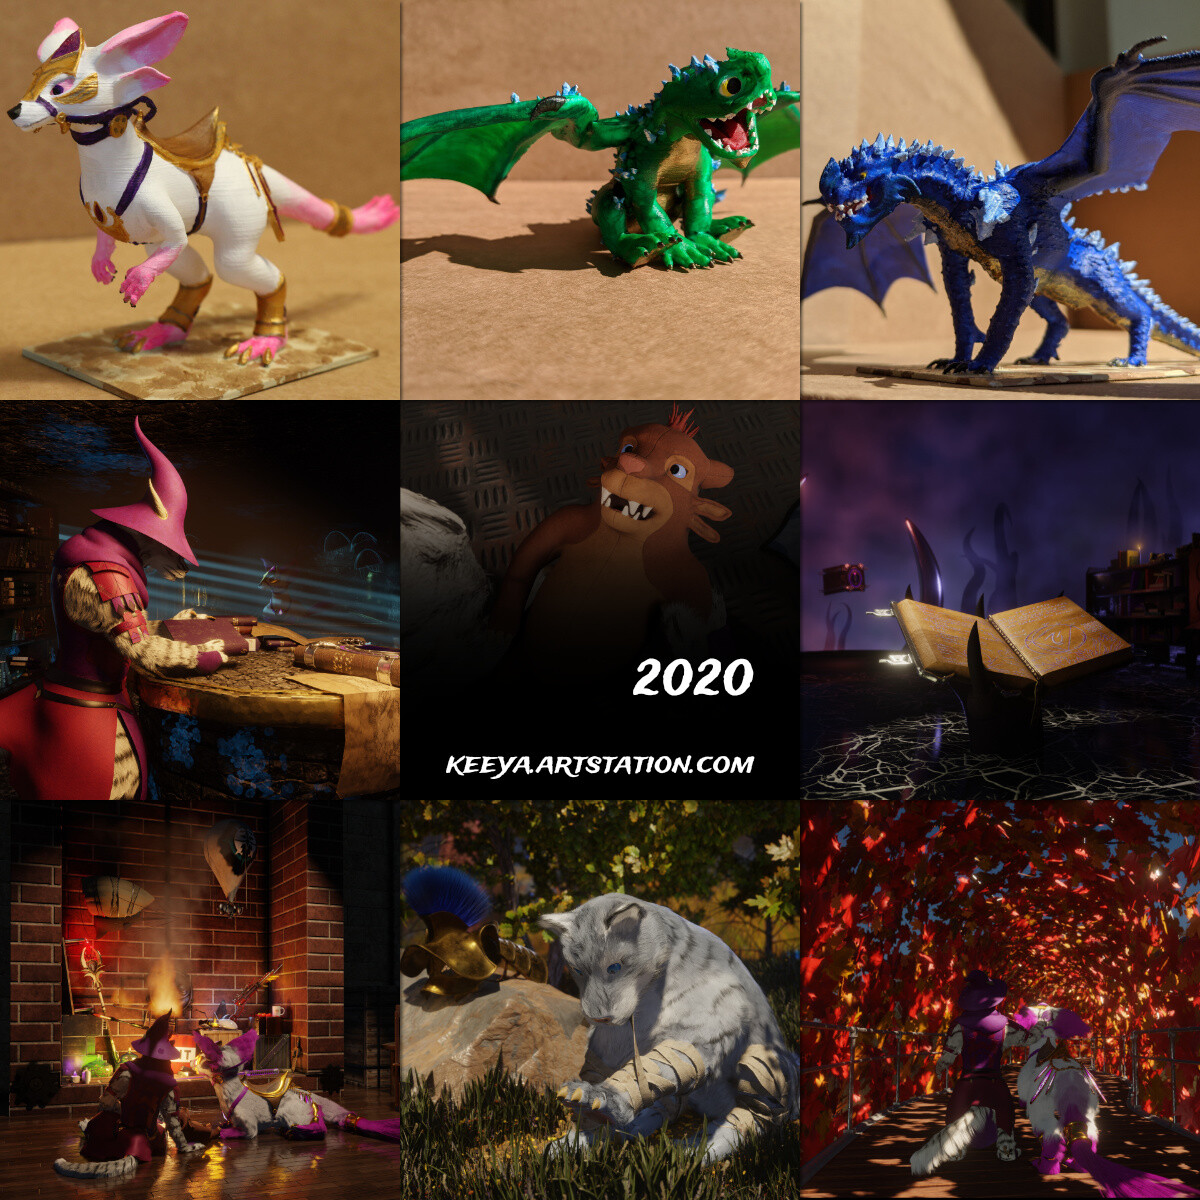 A Year of Art - 2020